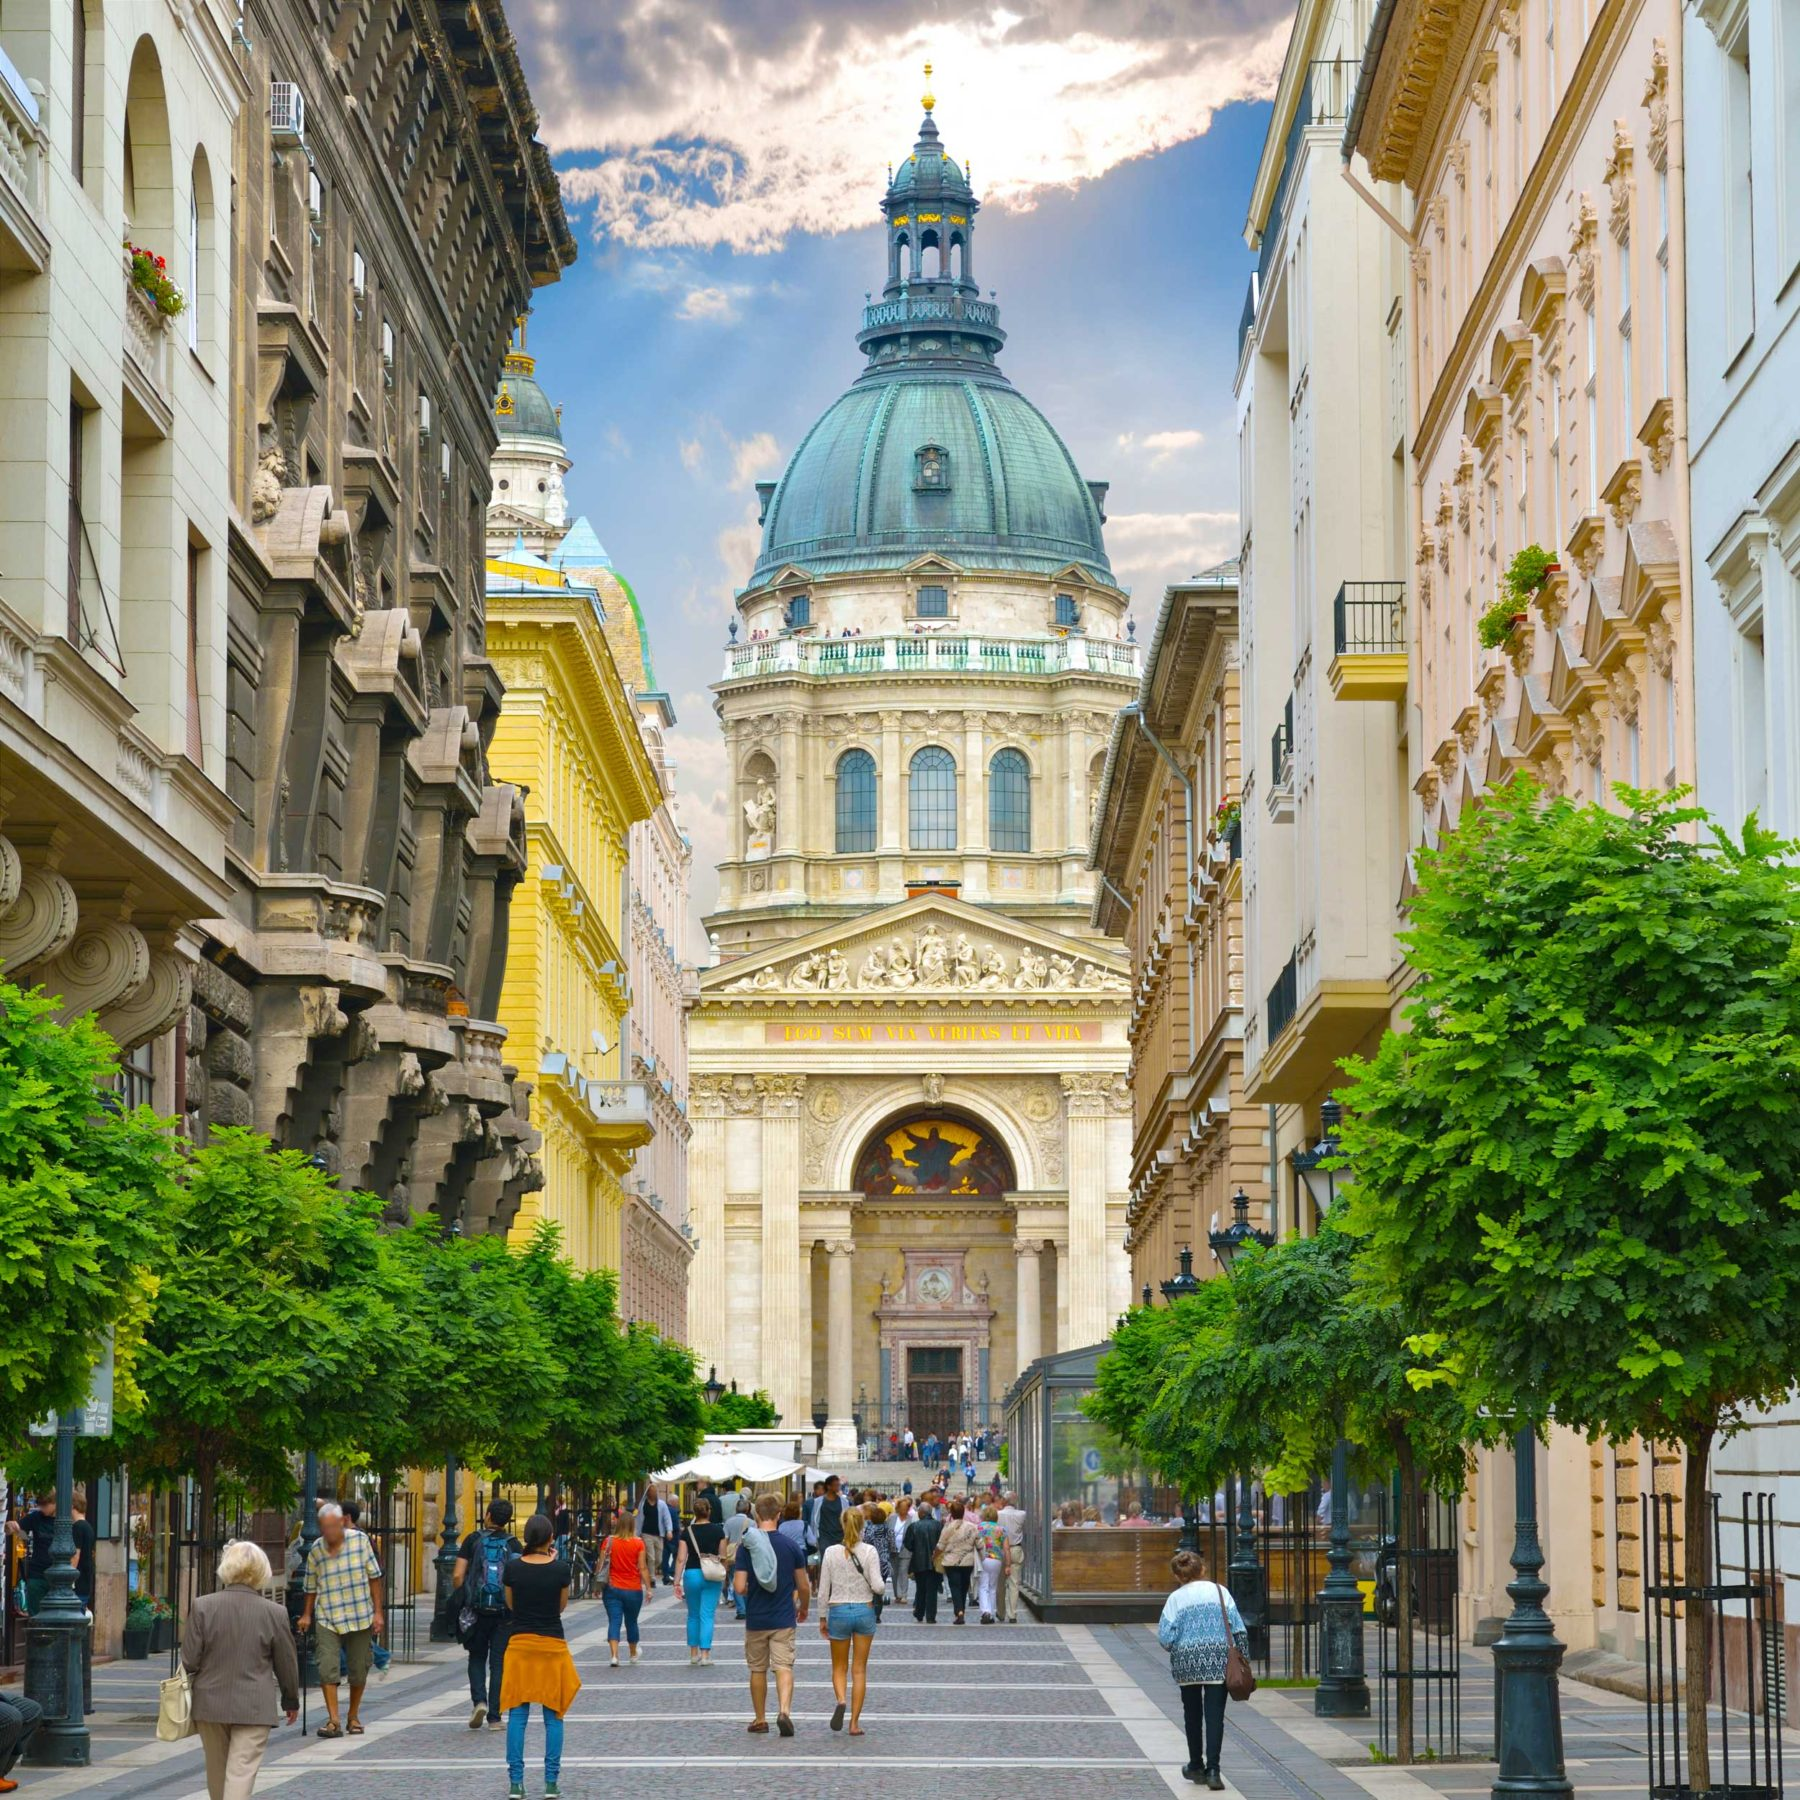 Street with people walking through it and leading up to a tall, looming basilica with a blue dome, Budapest